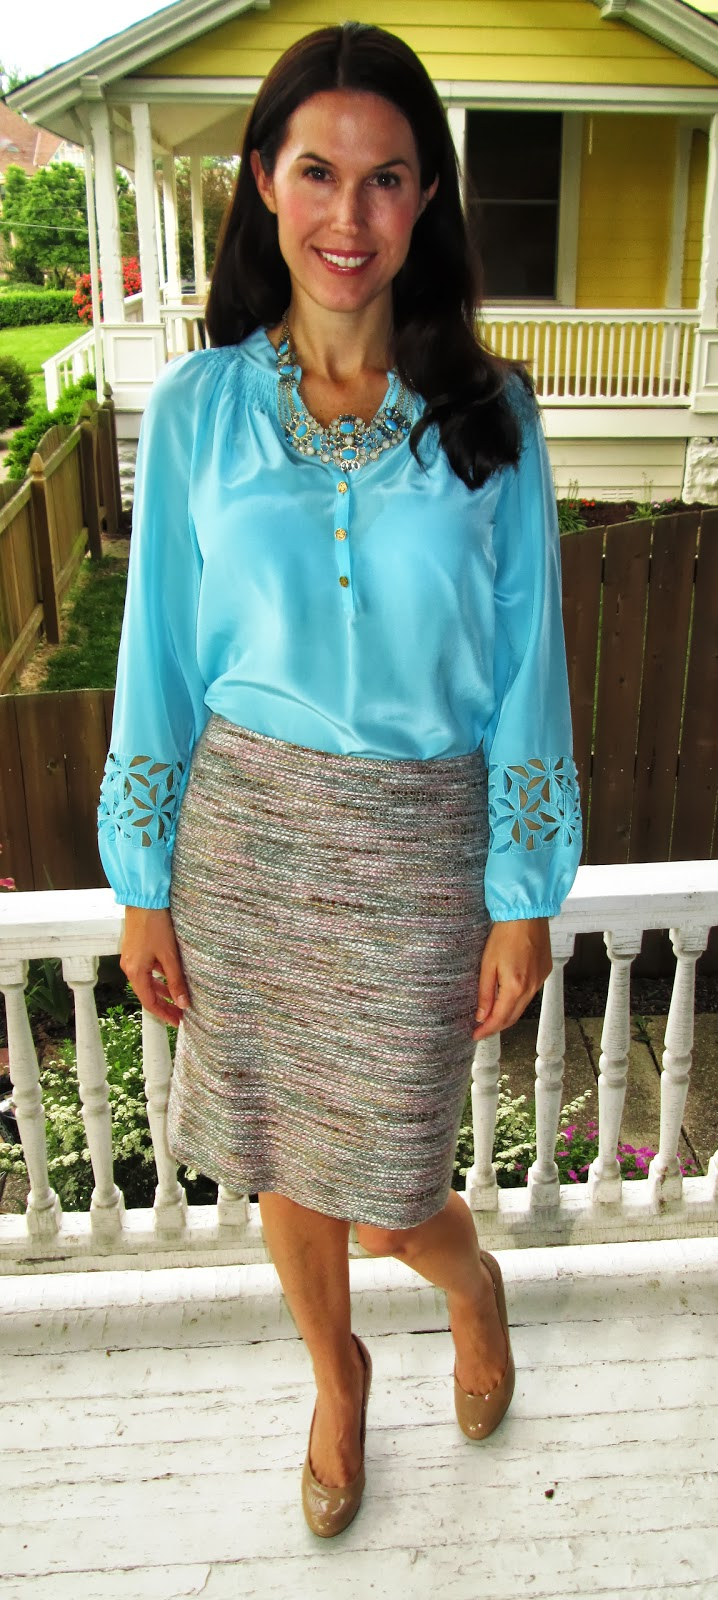 top with floral cutouts size small lilly pulitzer similar here